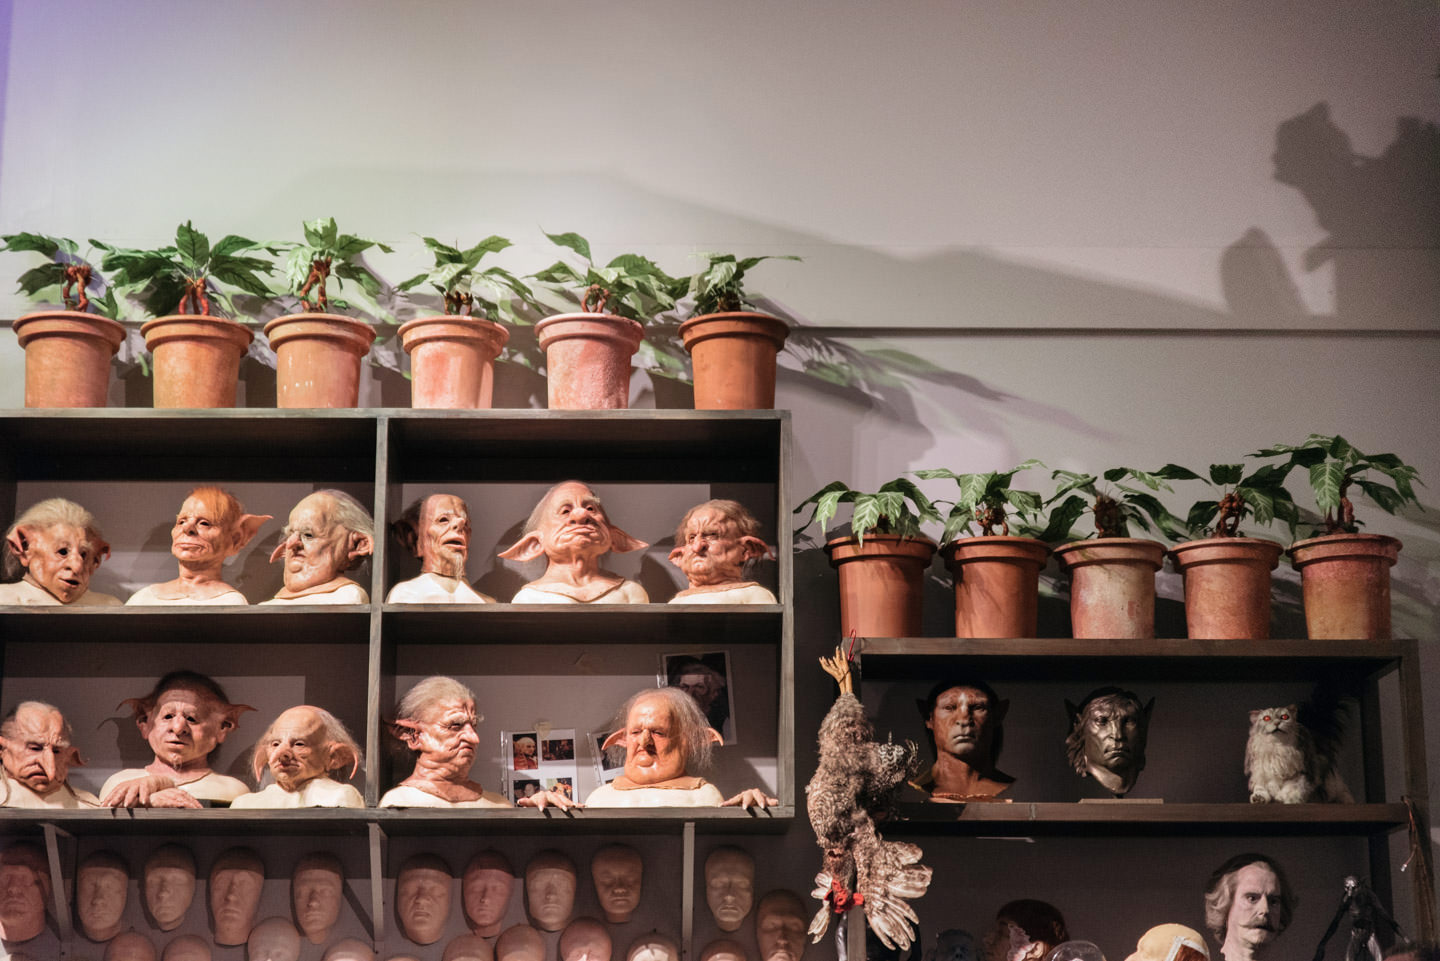 Blog-Mode-And-The-City-Lifestyle-Visite-Studios-Harry-Potter-Londres-24